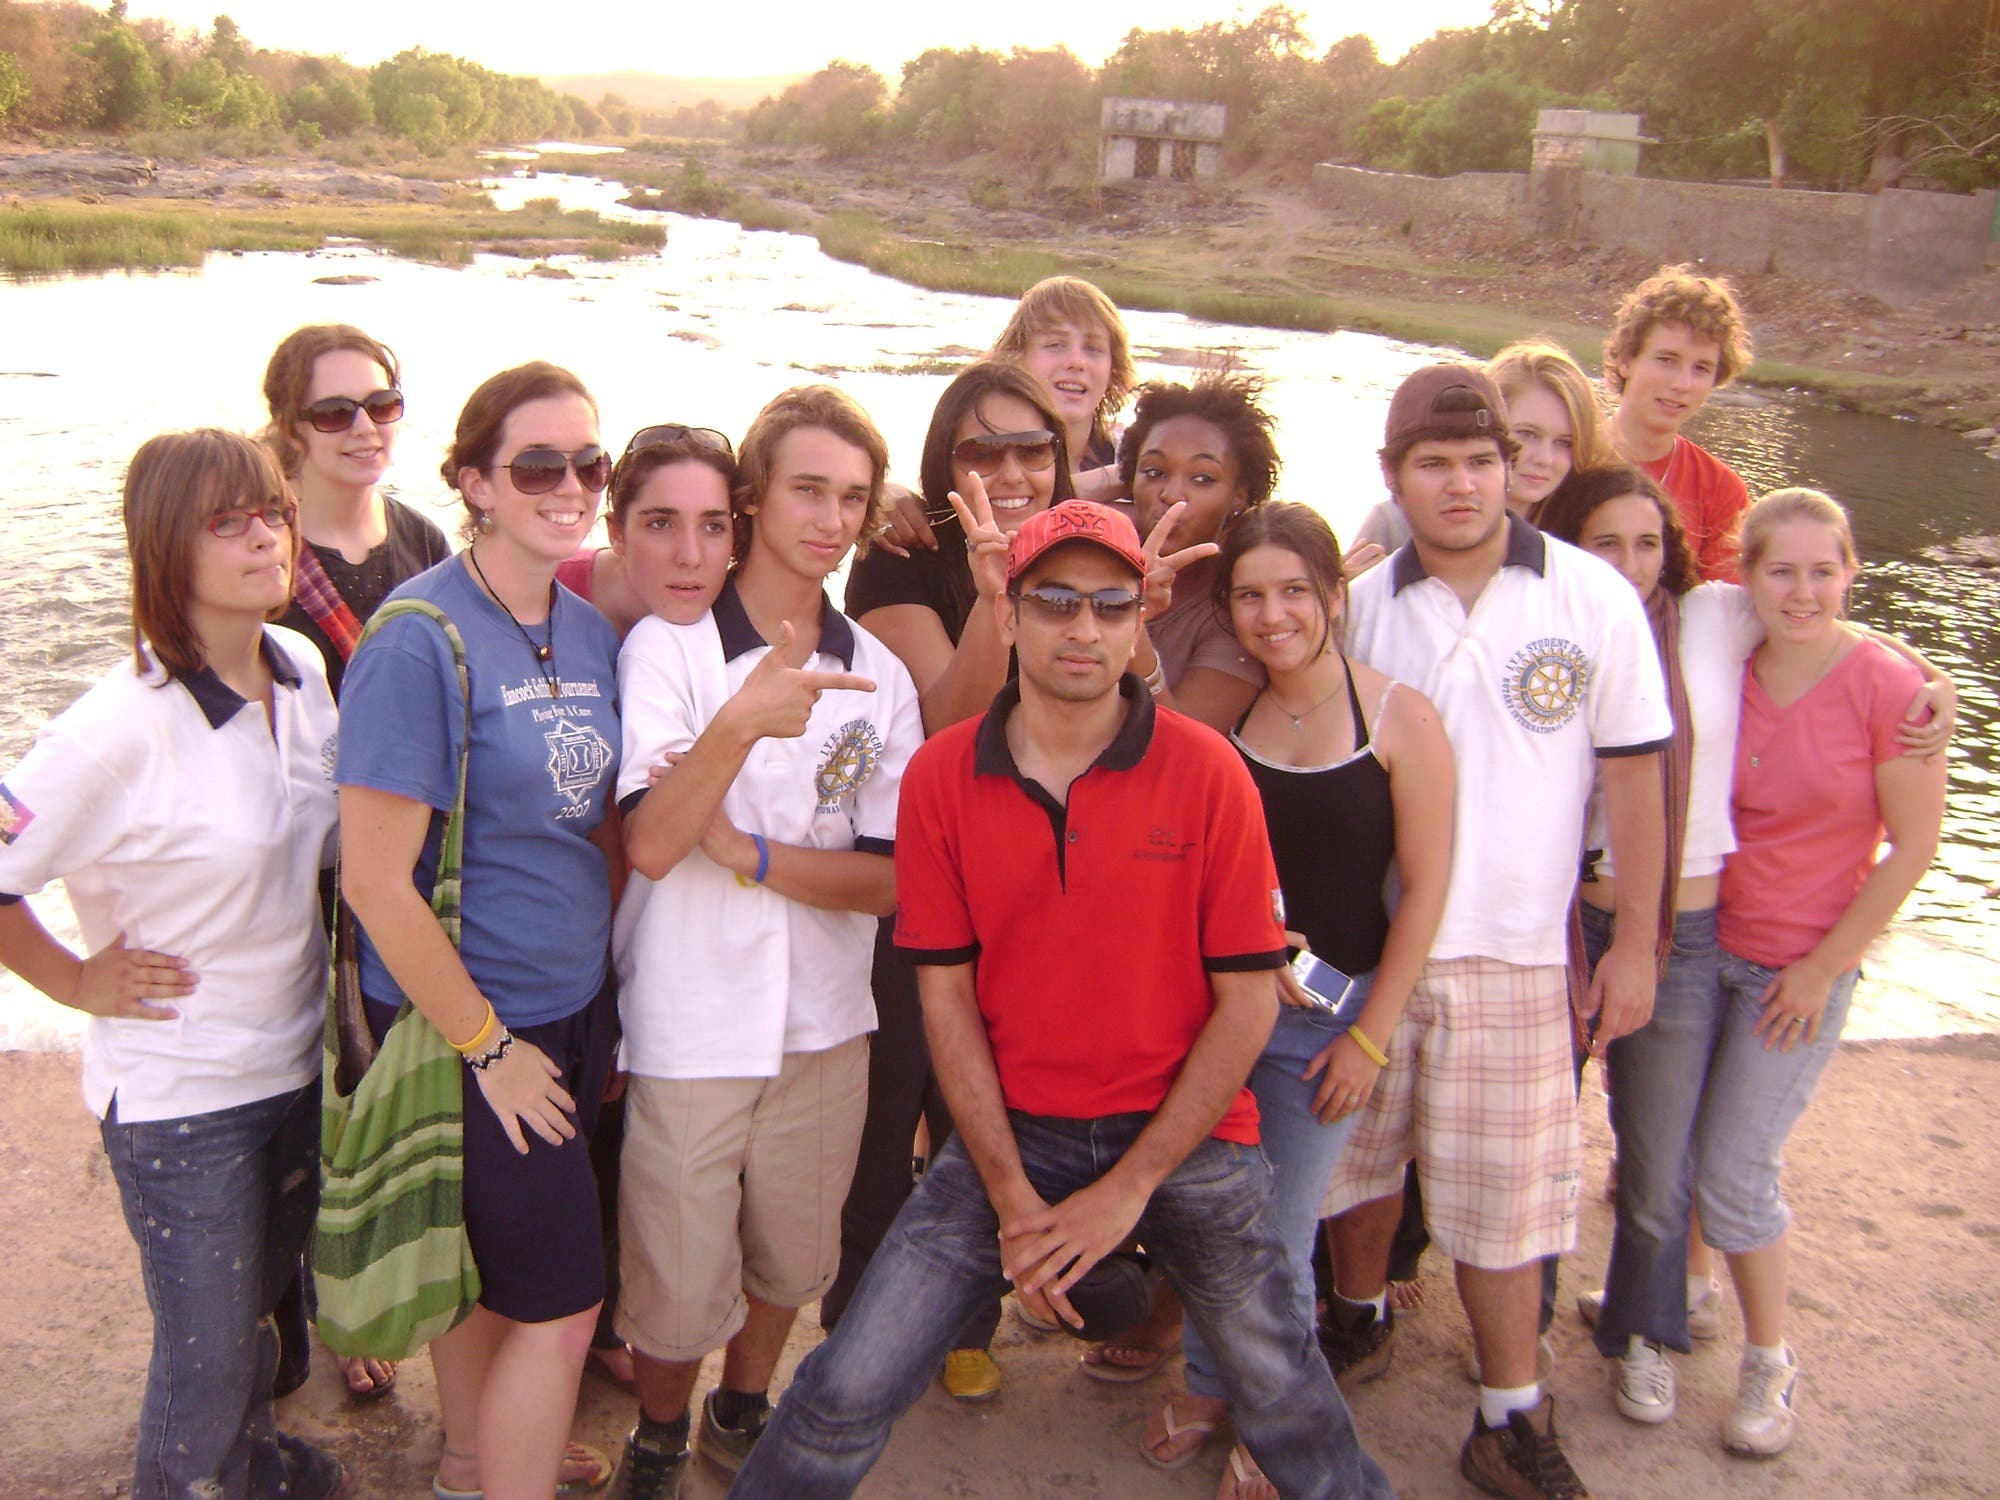 Aliasagar Tinwala (in red T-shirt) with a group of youngsters from the US and the UK at the Gir lion sanctuary. (Supplied)